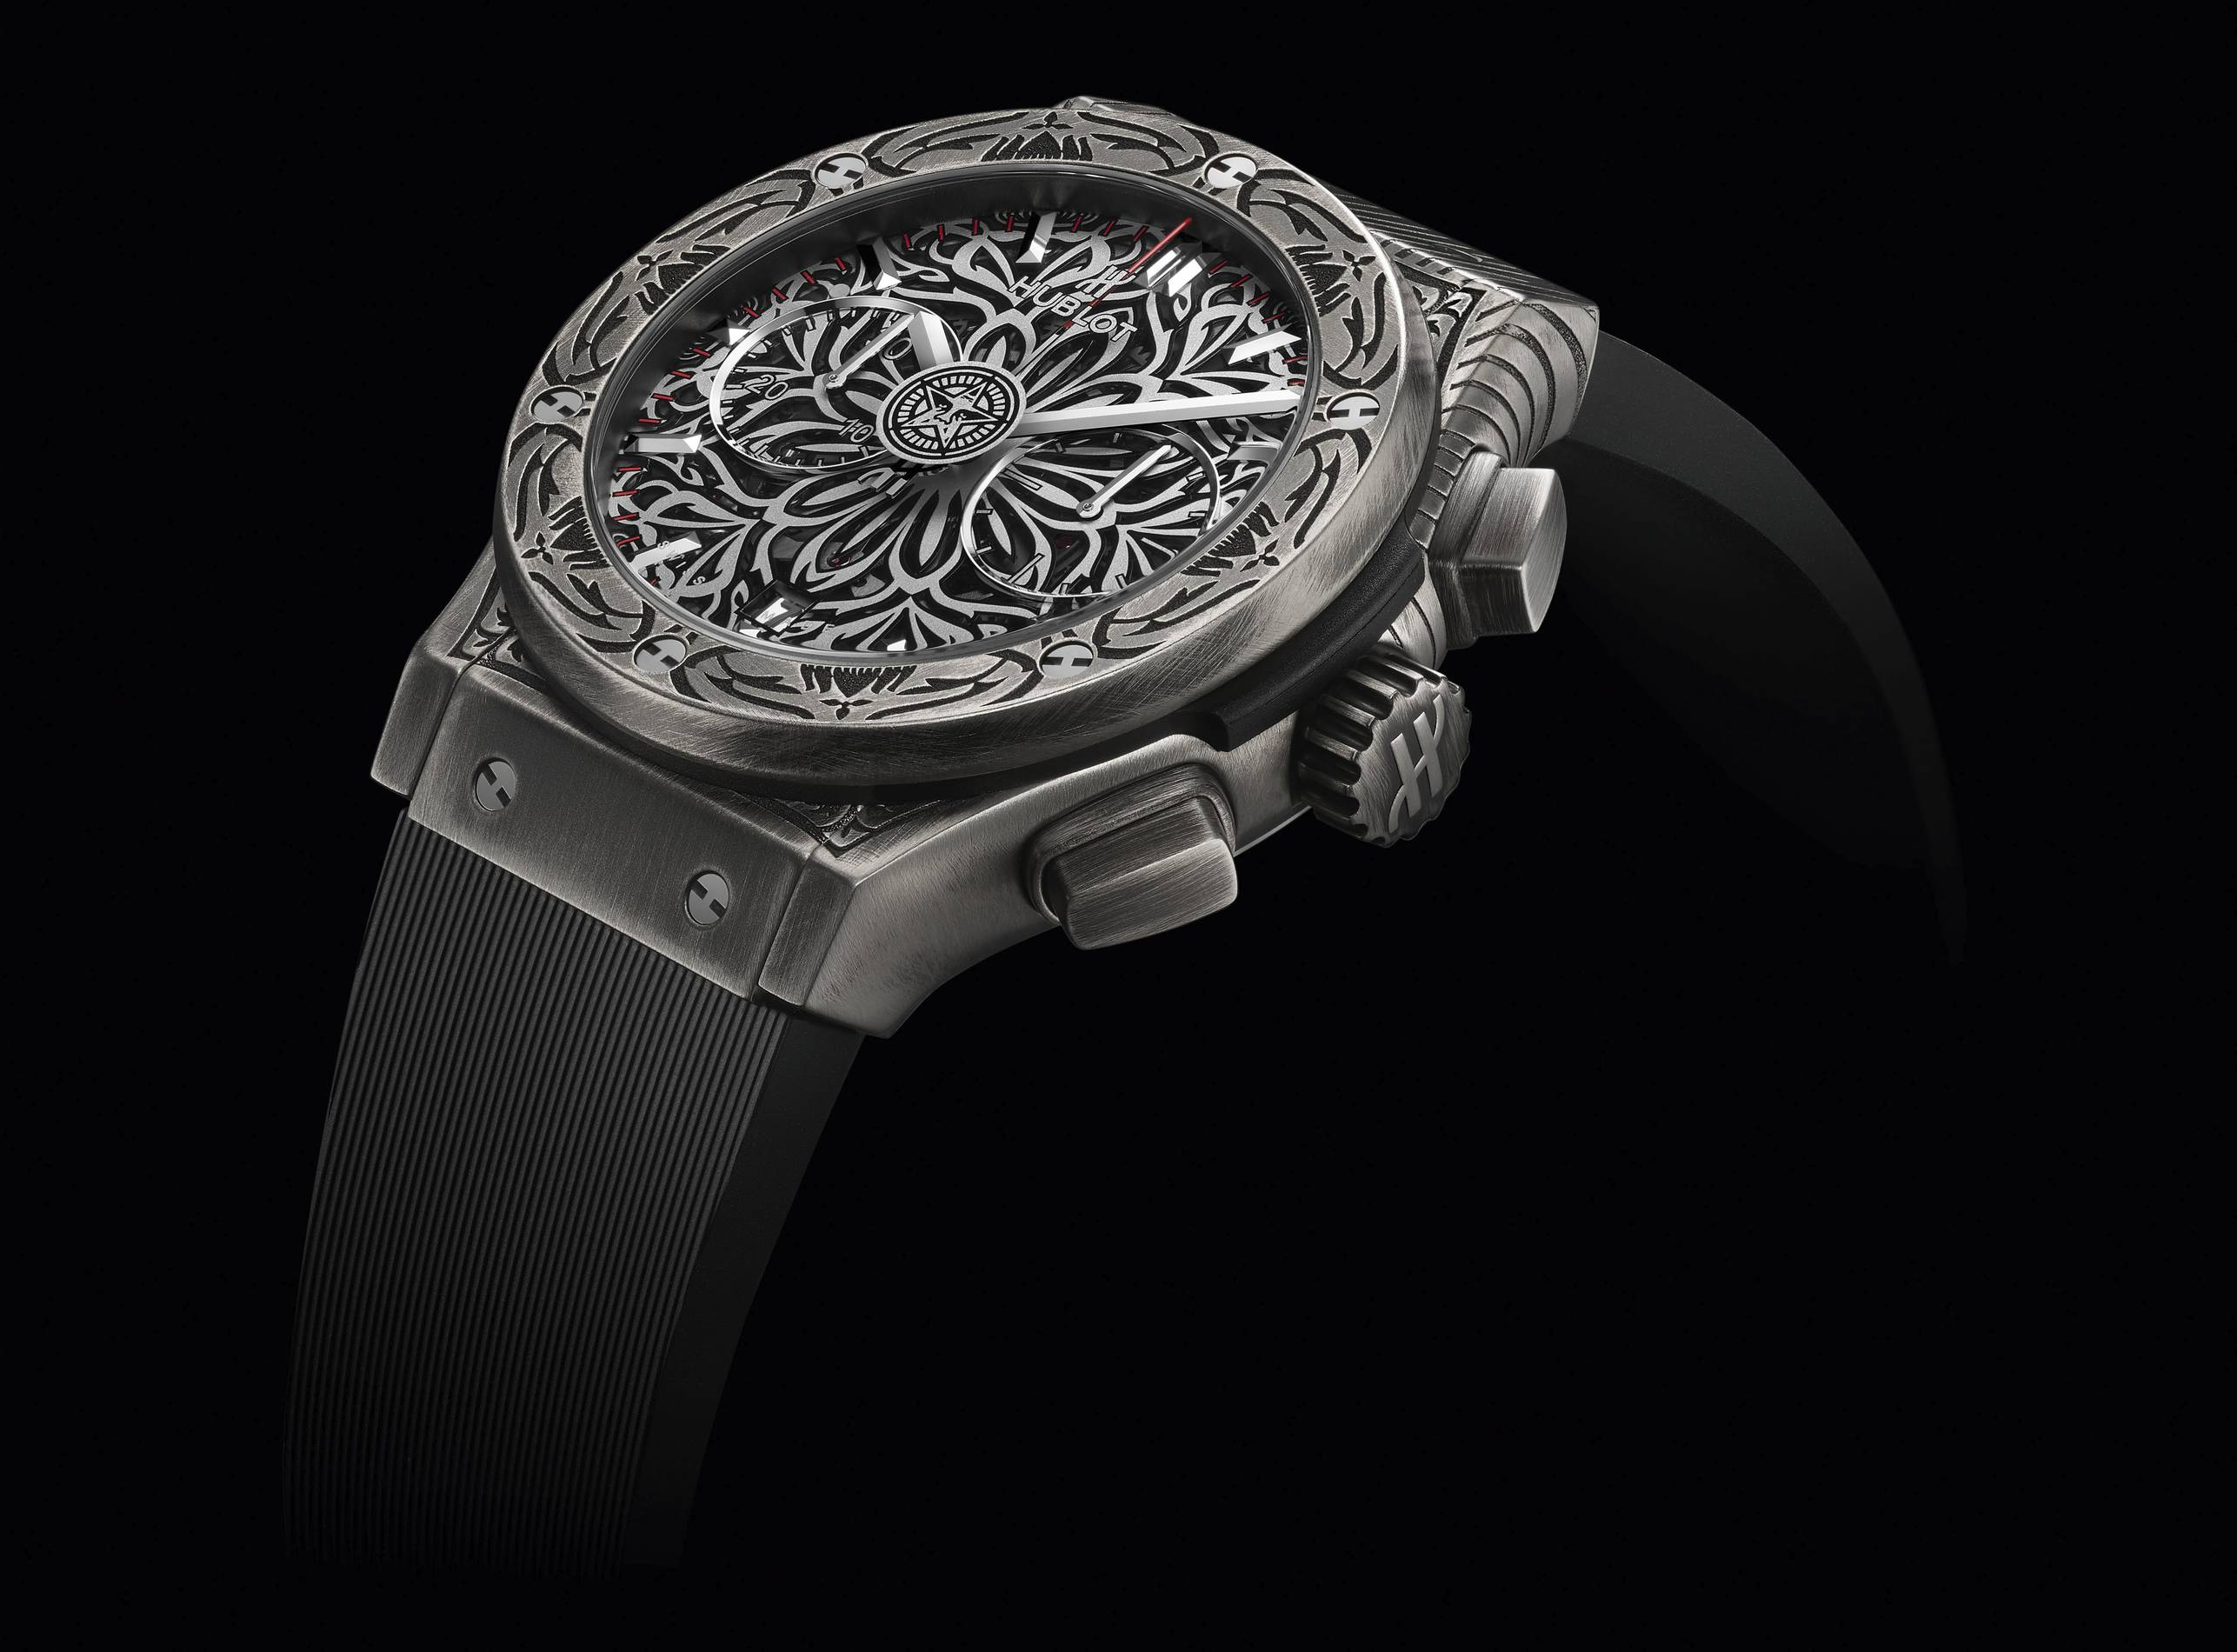 Hublot Shepard Fairey watch collaboration